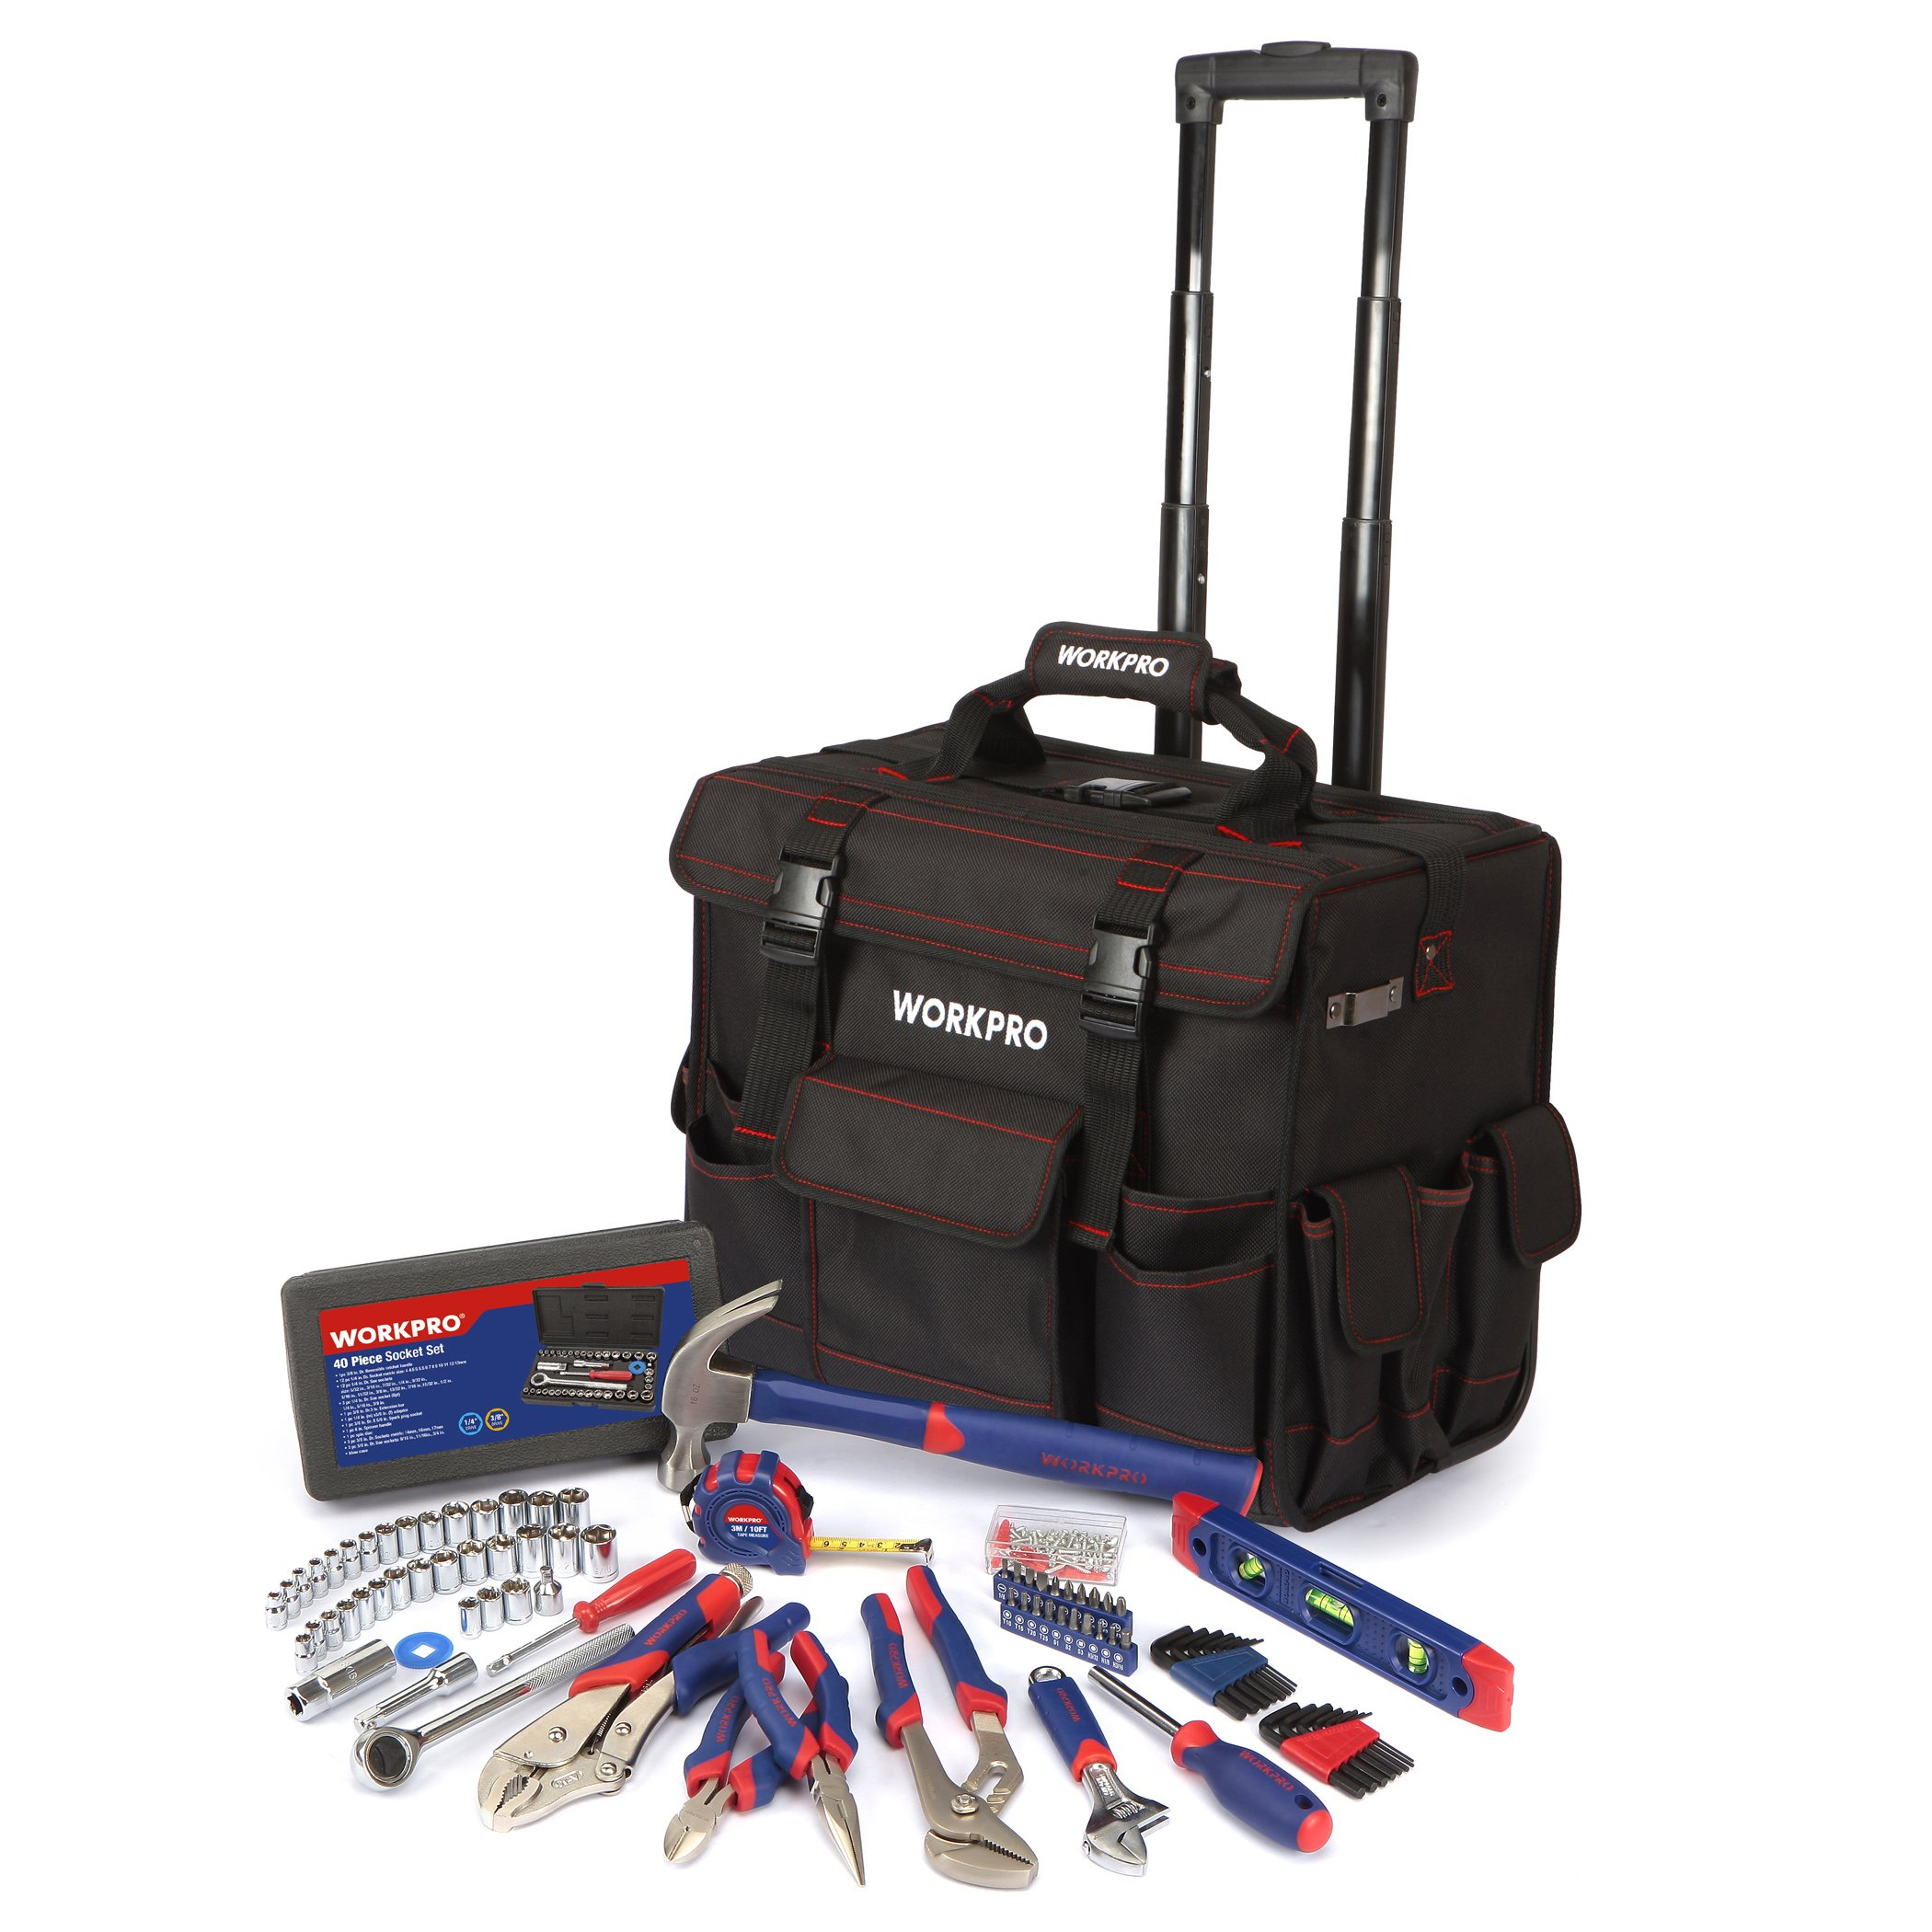 WORKPRO W009029A 176 -Pieces Tool Set With Tool Trolley  Bag, Chrome-vanadium Steel Home Tool Set by WORKPRO